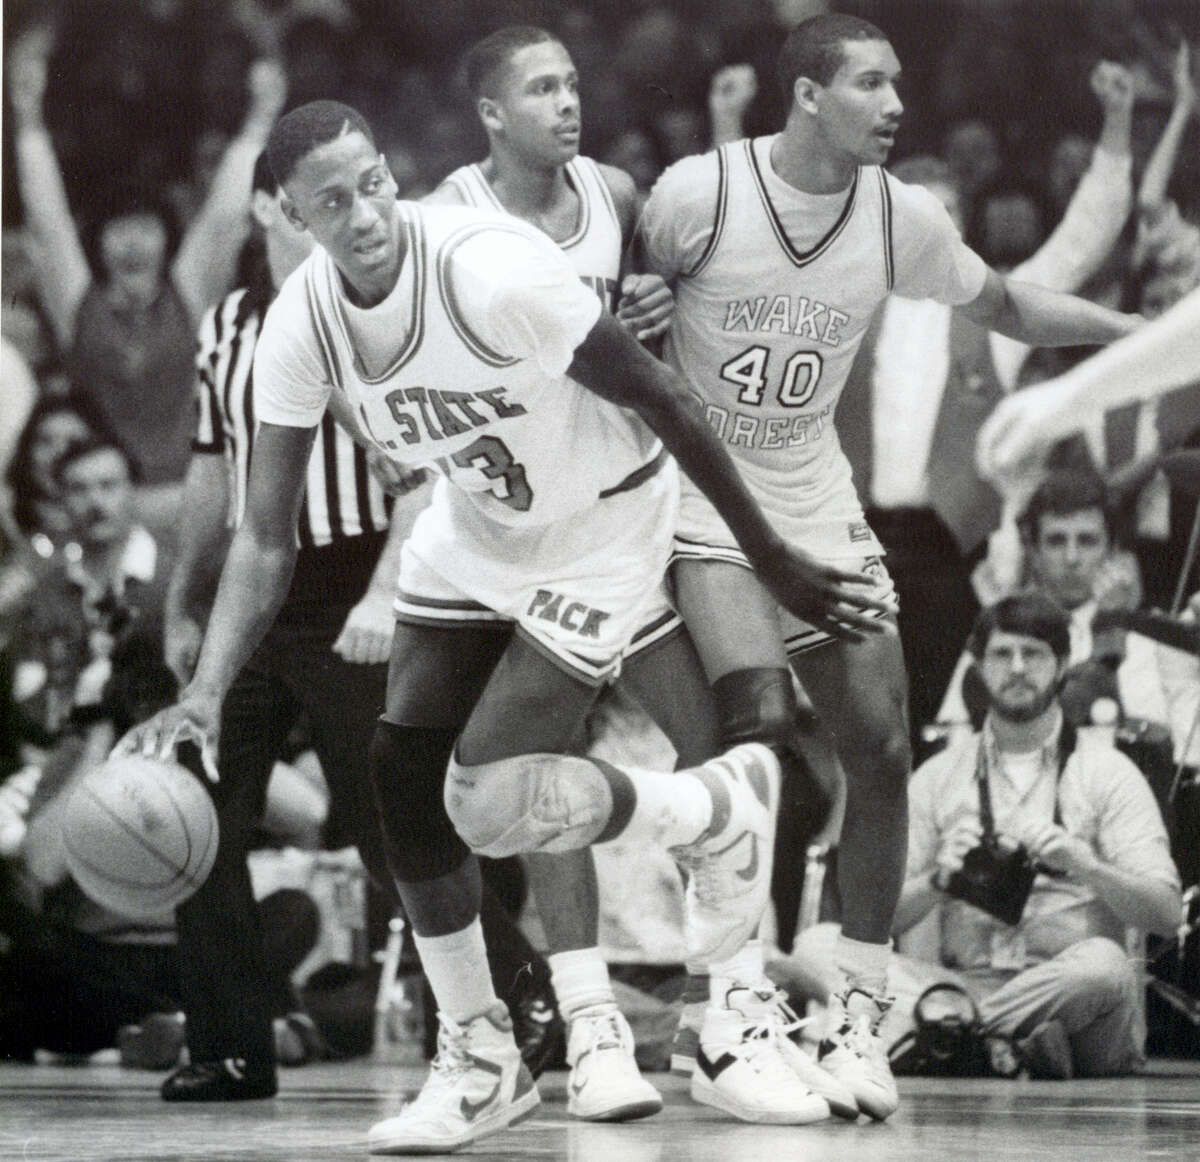 In this March 6, 1988 photo, North Carolina State NCAA college basketball player Charles Shackleford, left, plays against Wake Forest during a game in Raleigh, N.C. Shackleford, a North Carolina State basketball star in the 1980s who spent six seasons in the NBA, was found dead in his home on Jan. 27, 2017 in Kinston. He was 50.